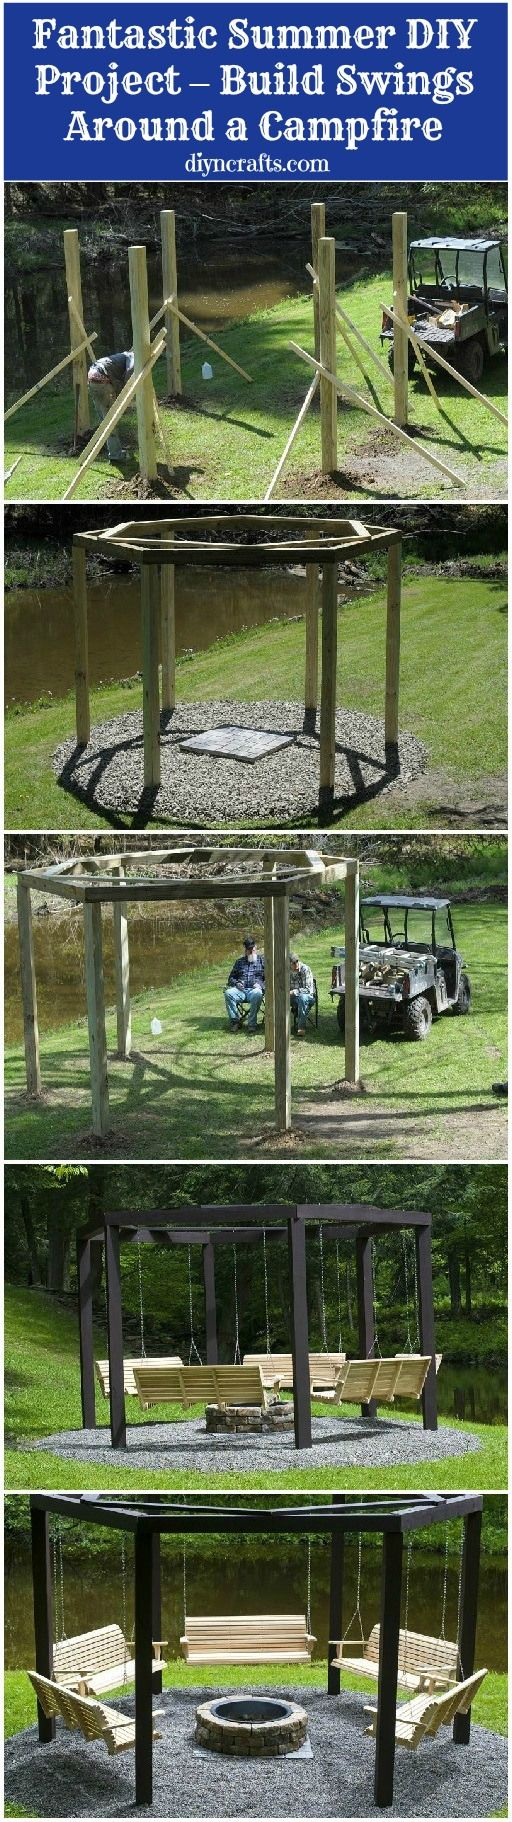 DIY. perfect for at the lake!